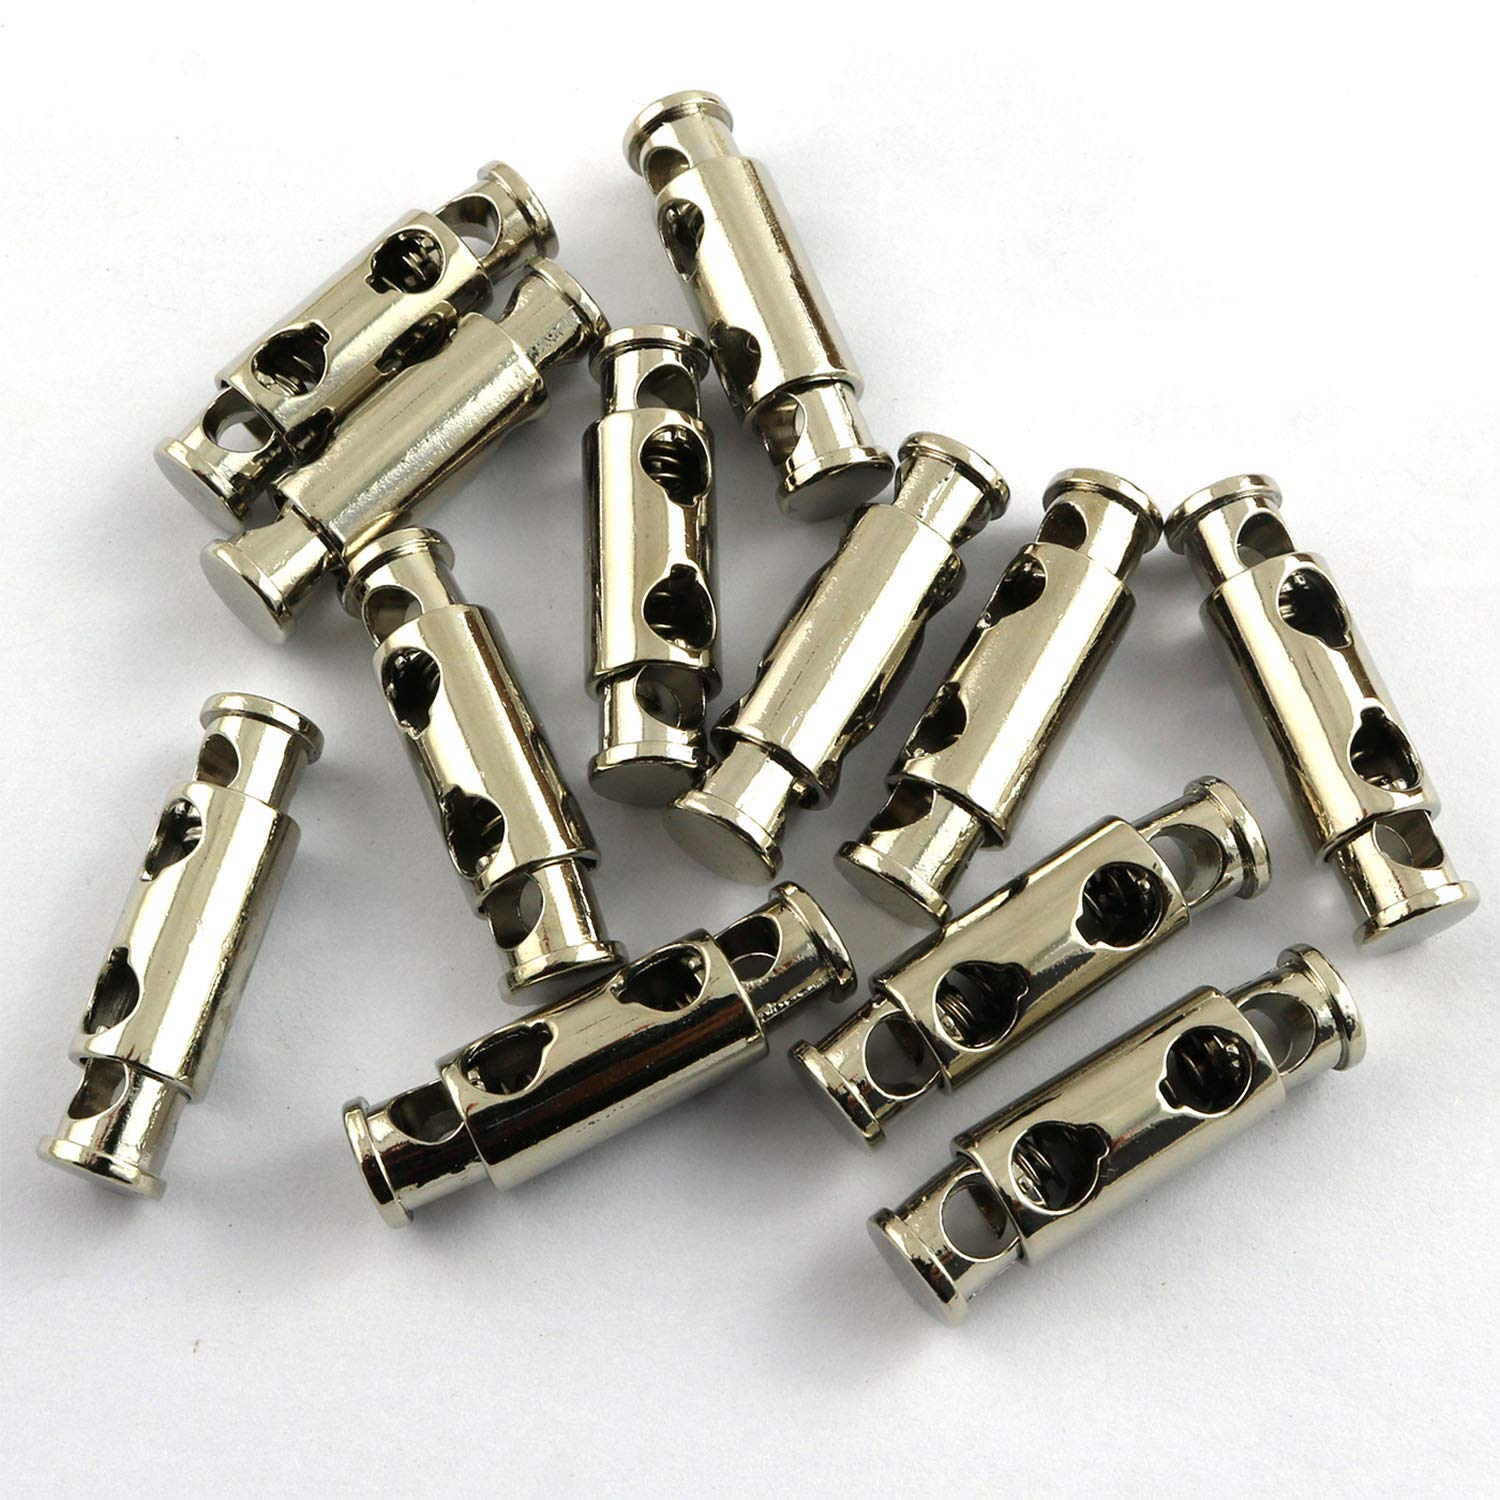 Youliang 12pcs Metal Alloy Spring Fastener Cord Lock Toggle Stopper White Nickel Clothes Shoes Bags DIY Handcraft